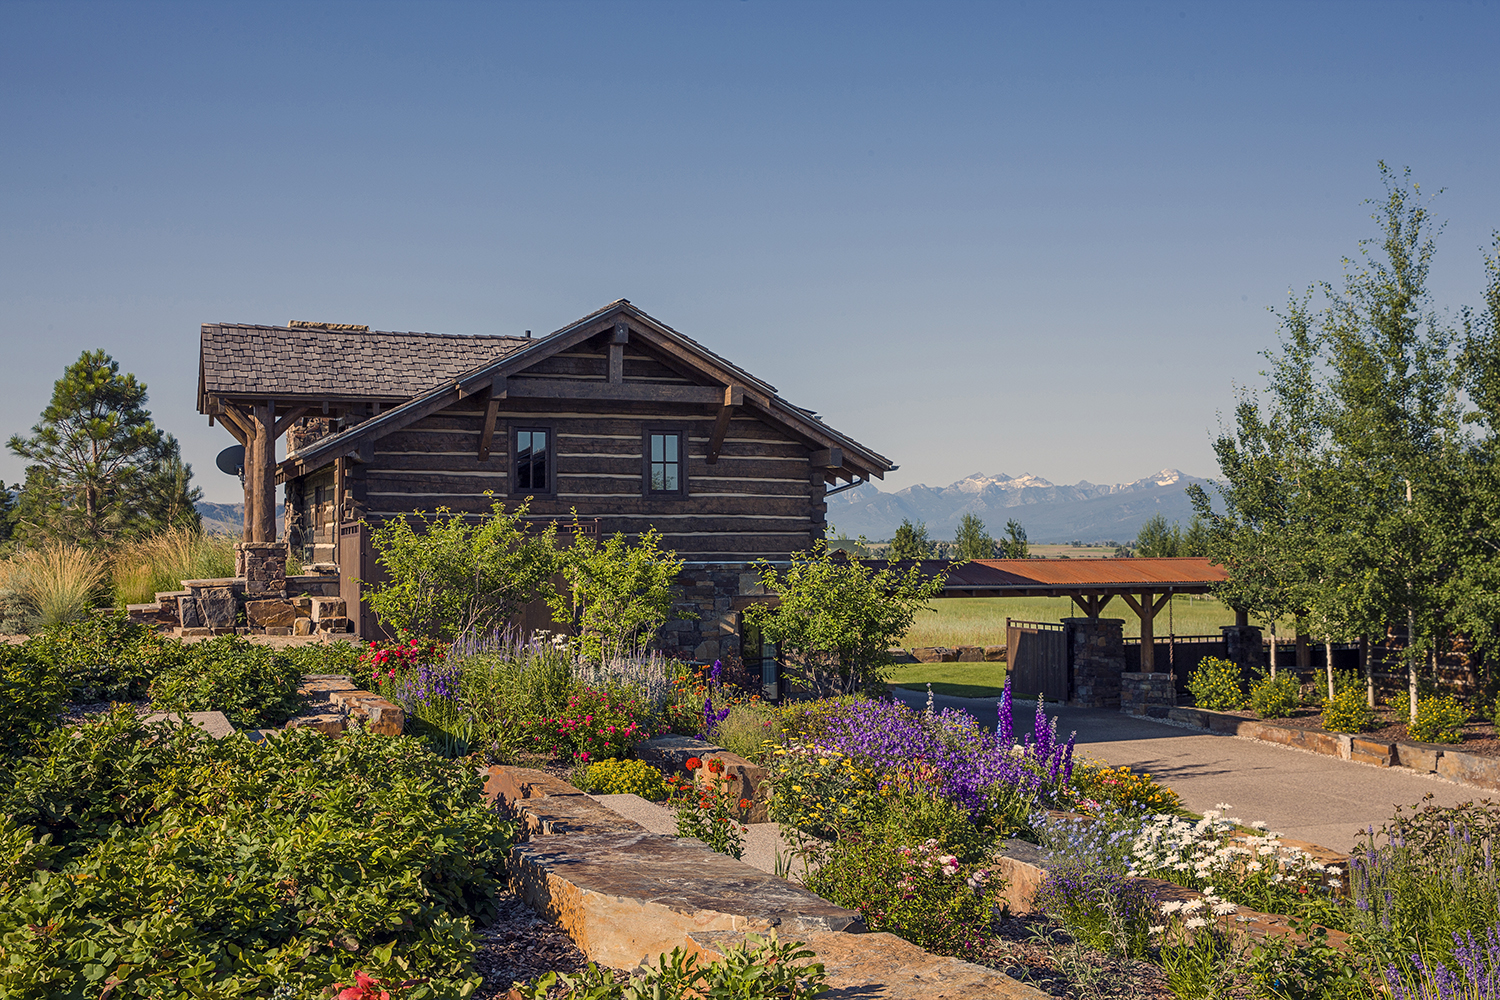 arockyehlen-7790 Montana Mountain Home Plans on montana log cabins, locati house plans, montana log home plans,